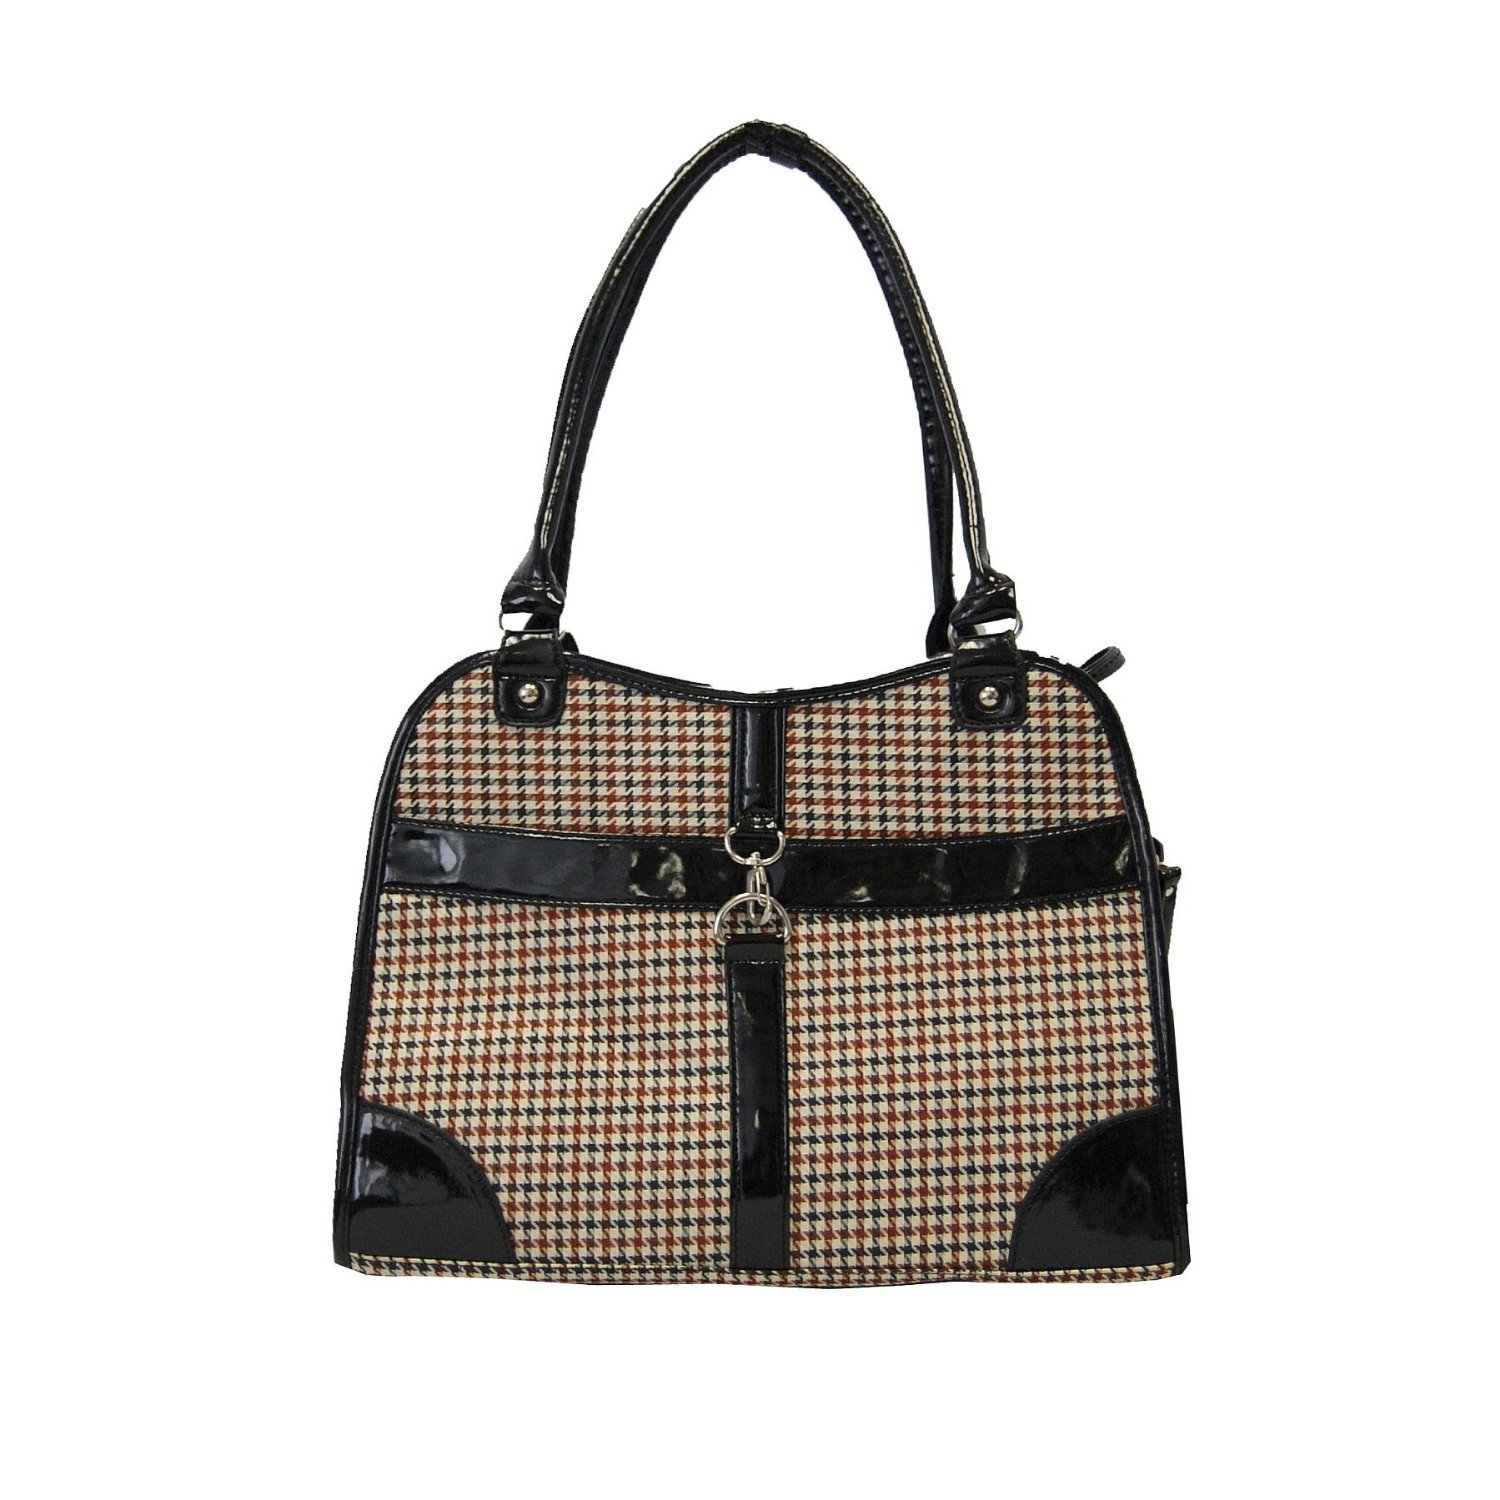 Houndstooth Print Tote Pet Dog Cat Carrier/Tote Purse Travel Airline Bag -Brown-Medium